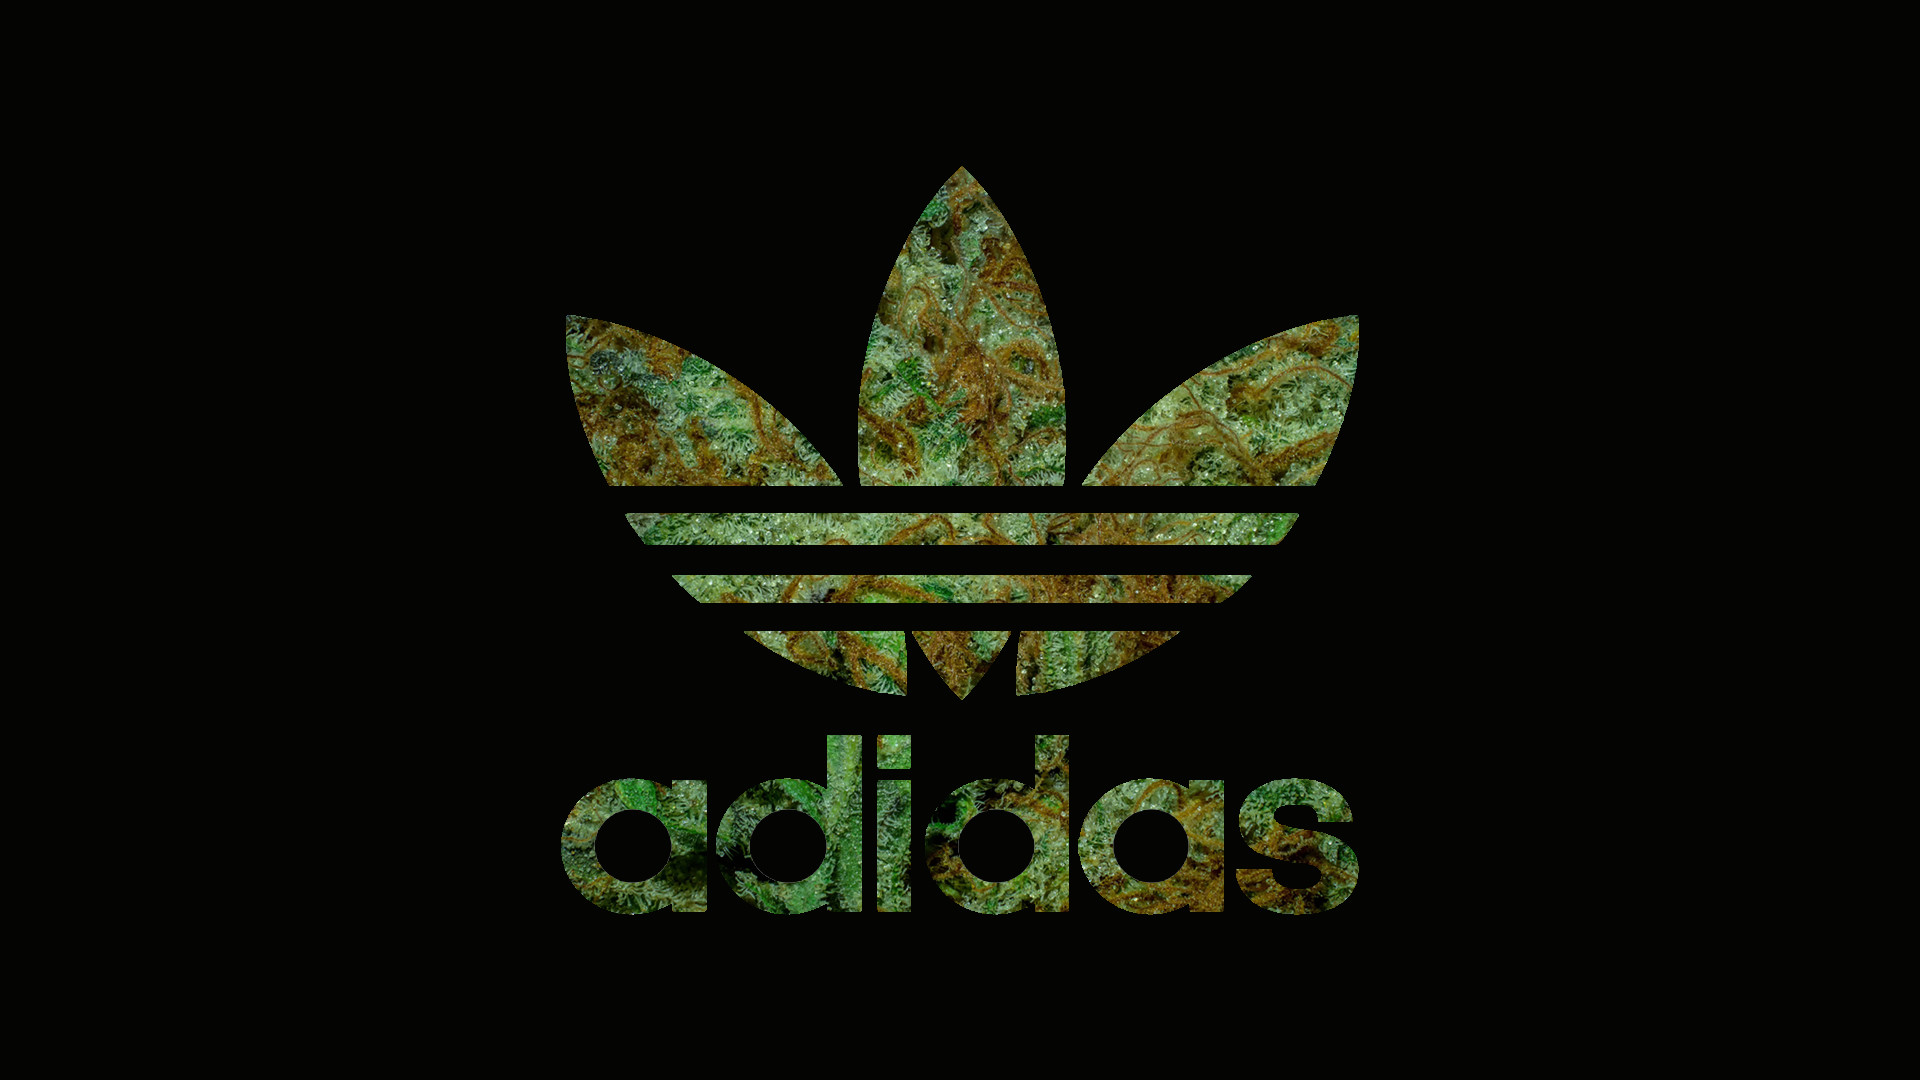 Cool logo wallpapers 79 background pictures - Cool wallpapers for guys ...